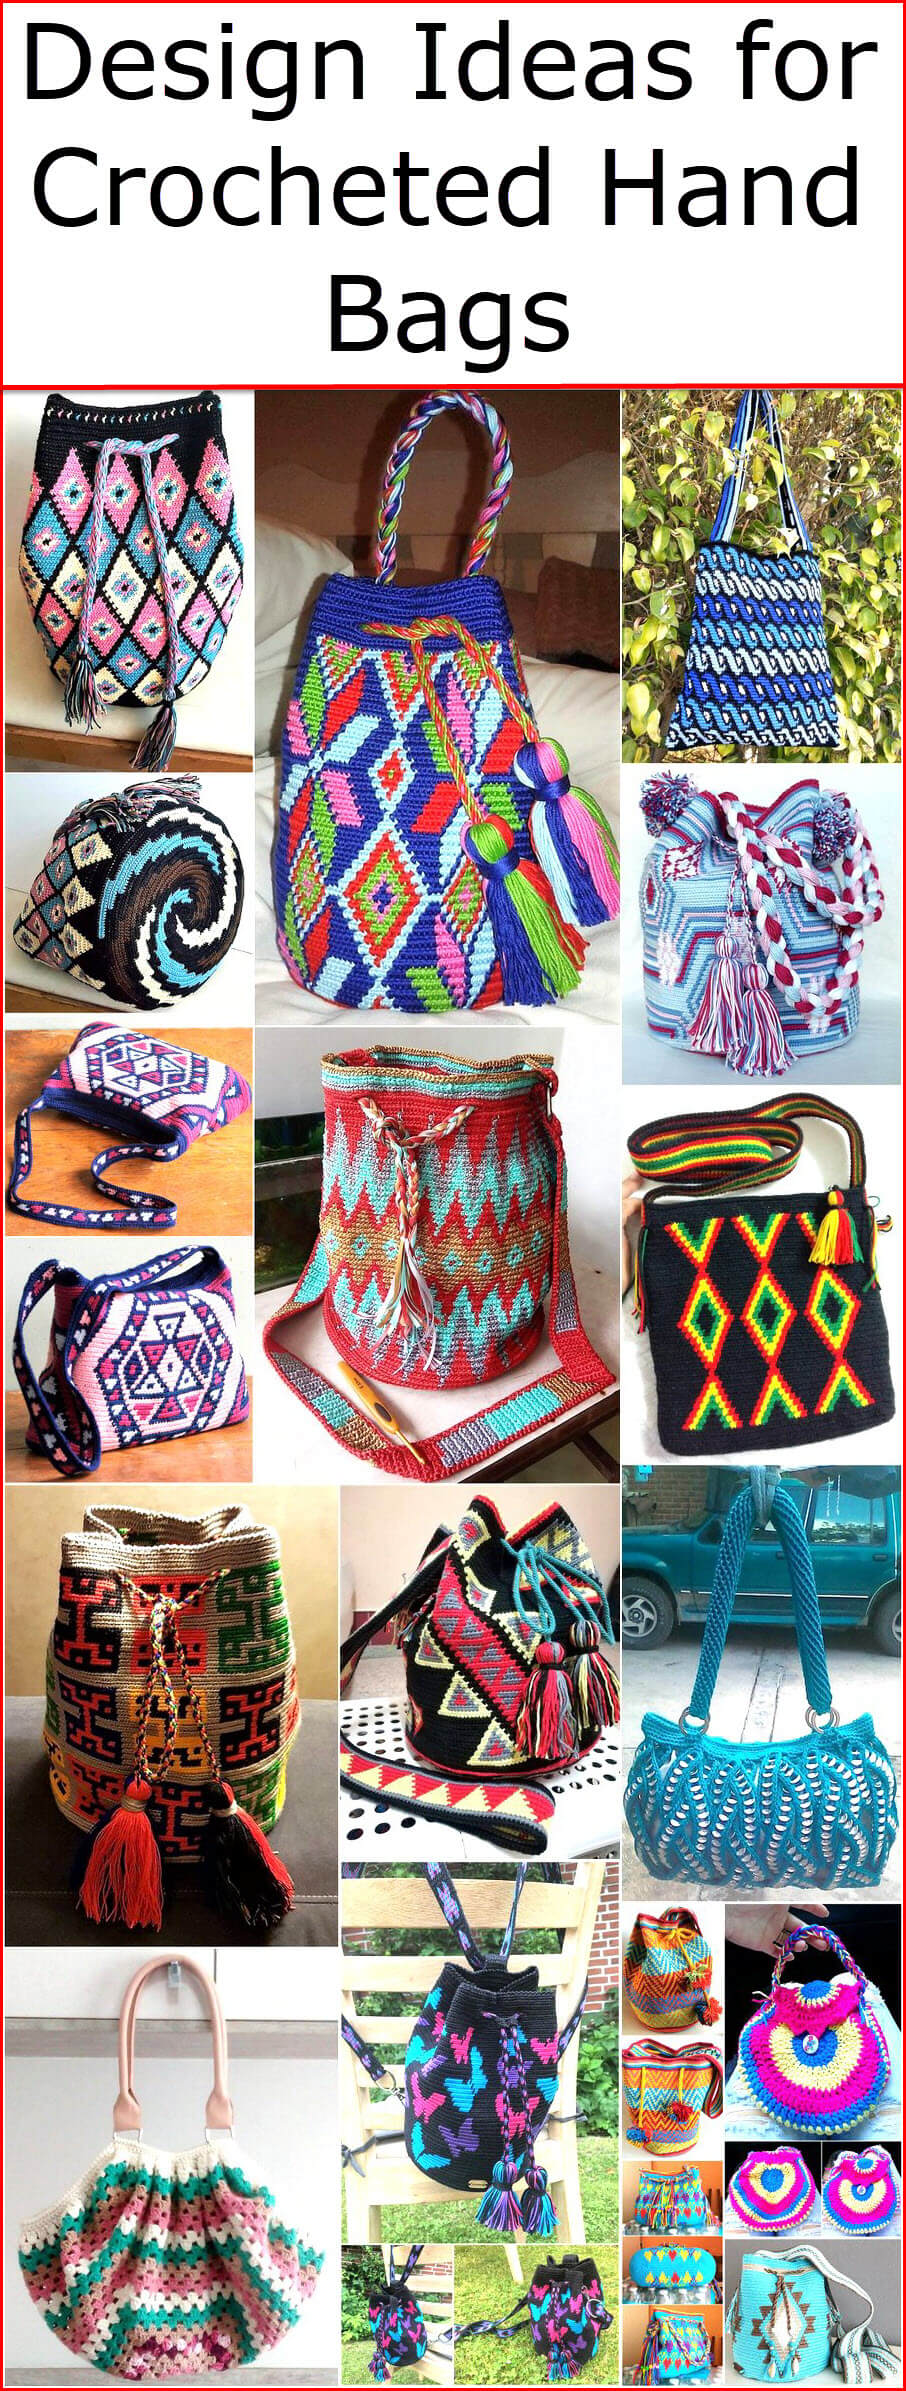 Design Ideas for Crocheted Hand Bags